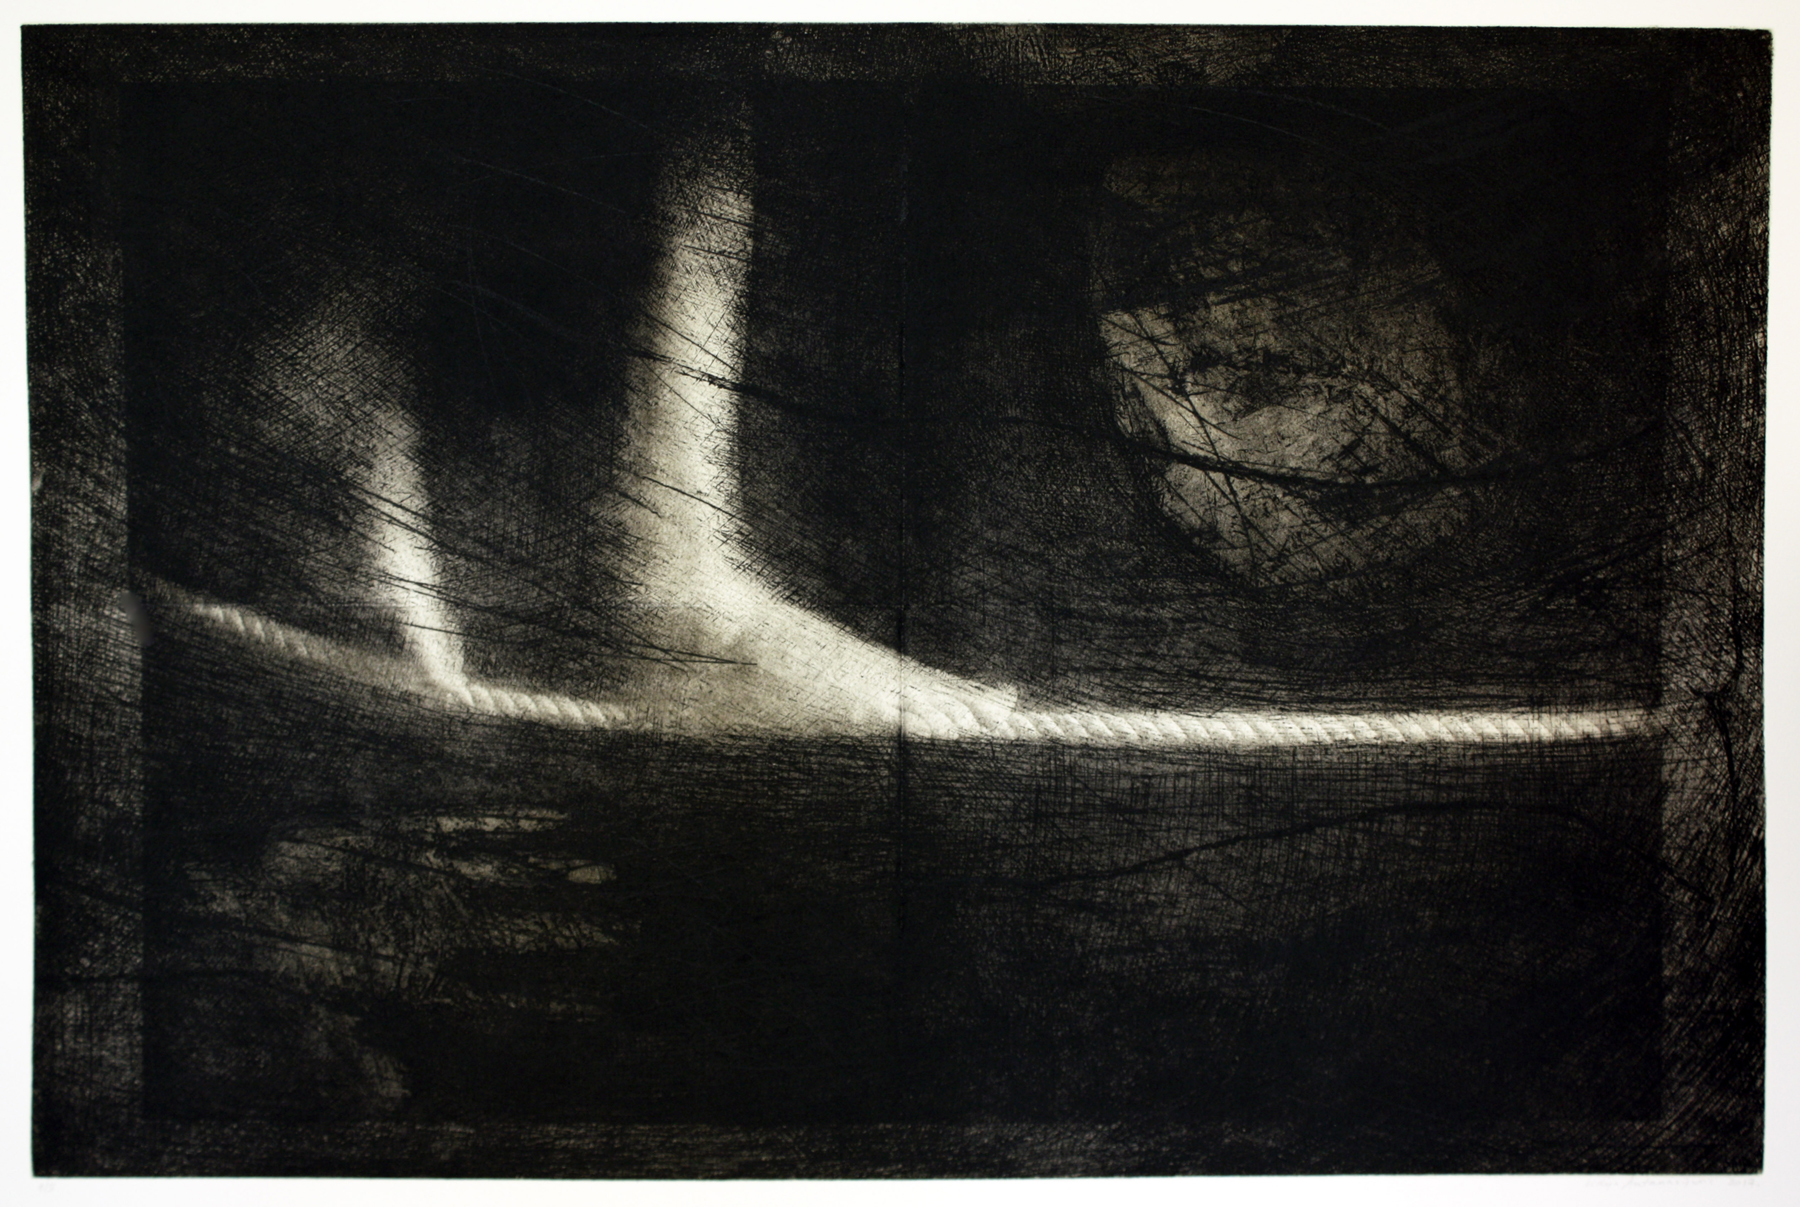 Tightrope   Etching and photopolymer gravure